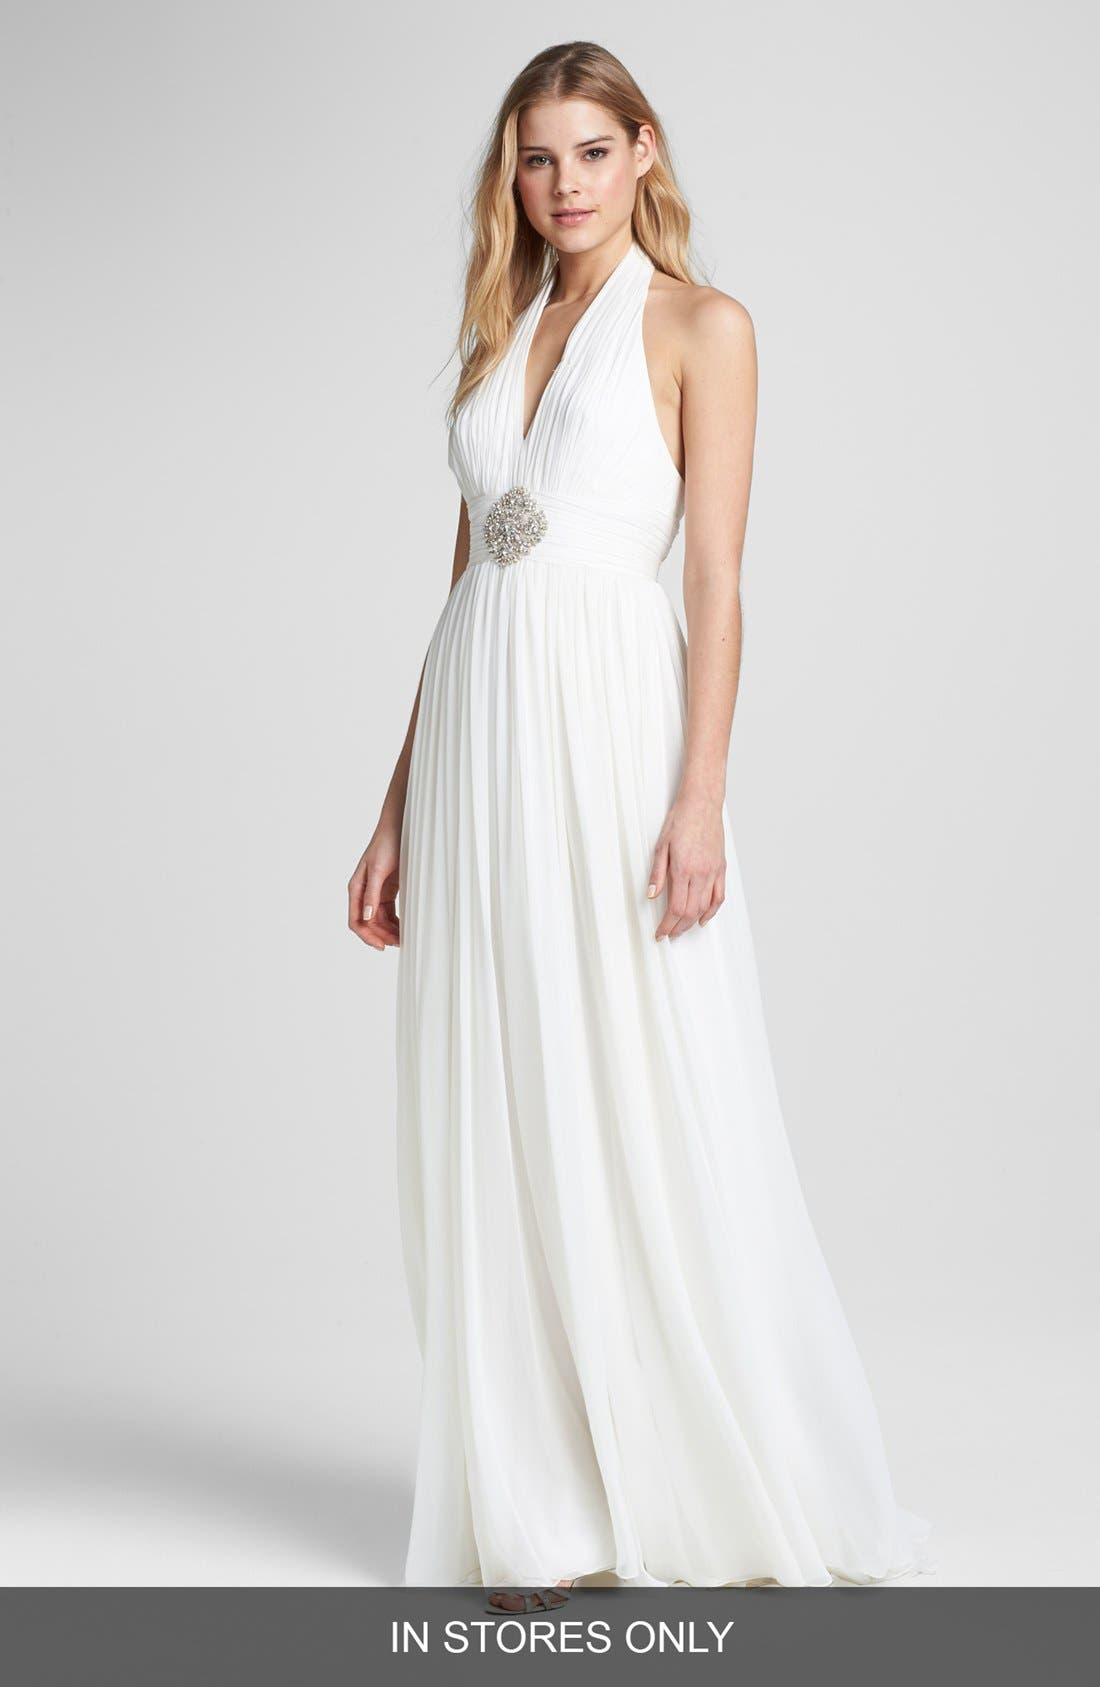 Alternate Image 1 Selected - Roses by Reem Acra 'Gardenia' Embellished Silk Dress (In Stores Only)